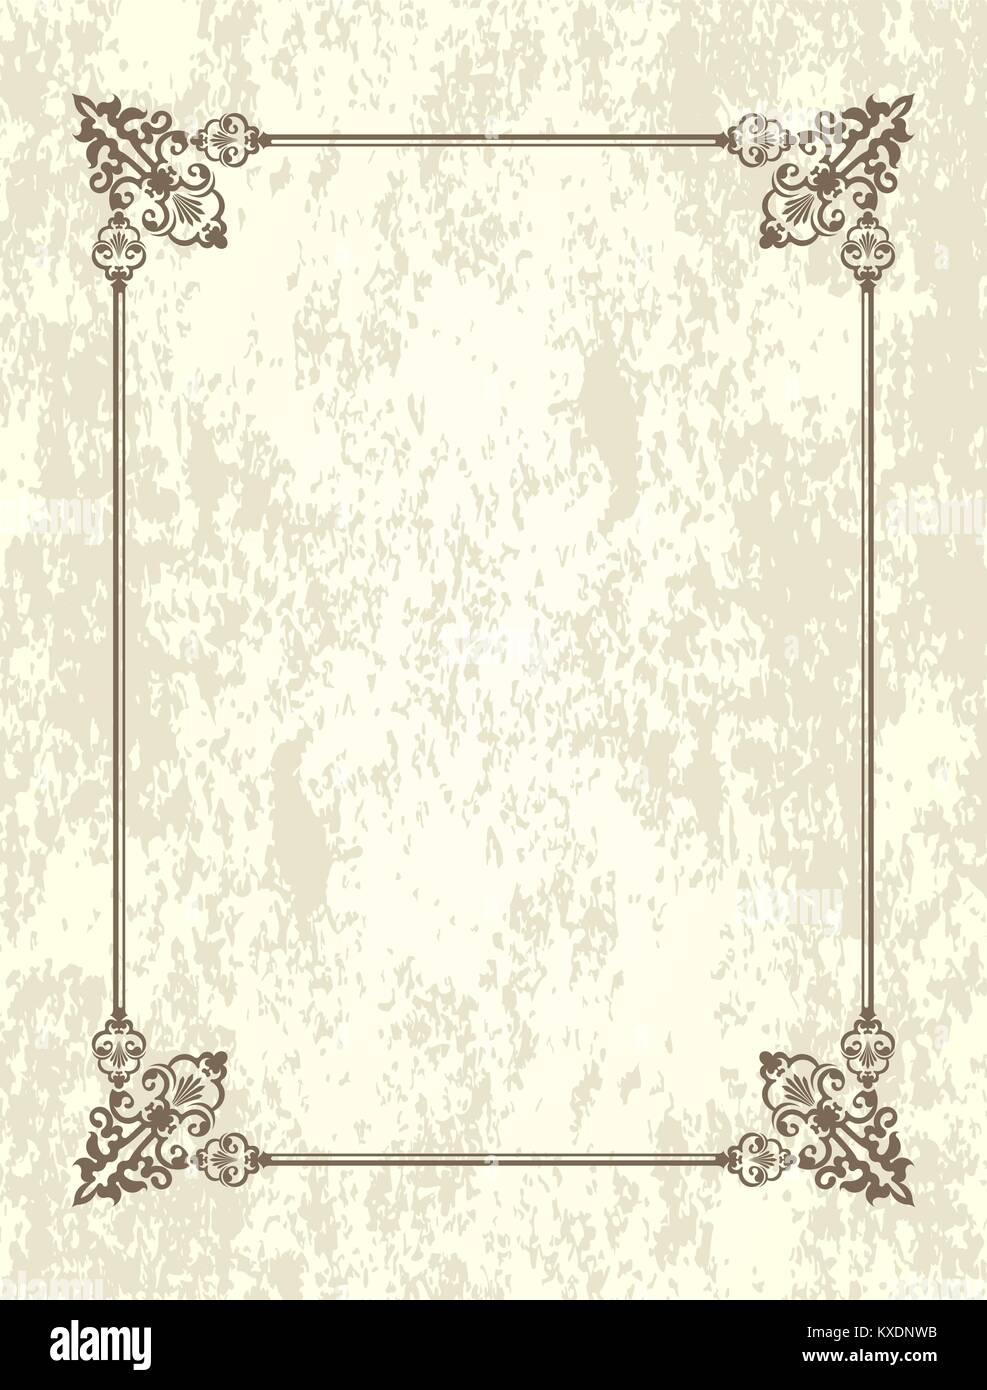 Old Frame With Blank Space For Text Retro Vintage Greeting Card